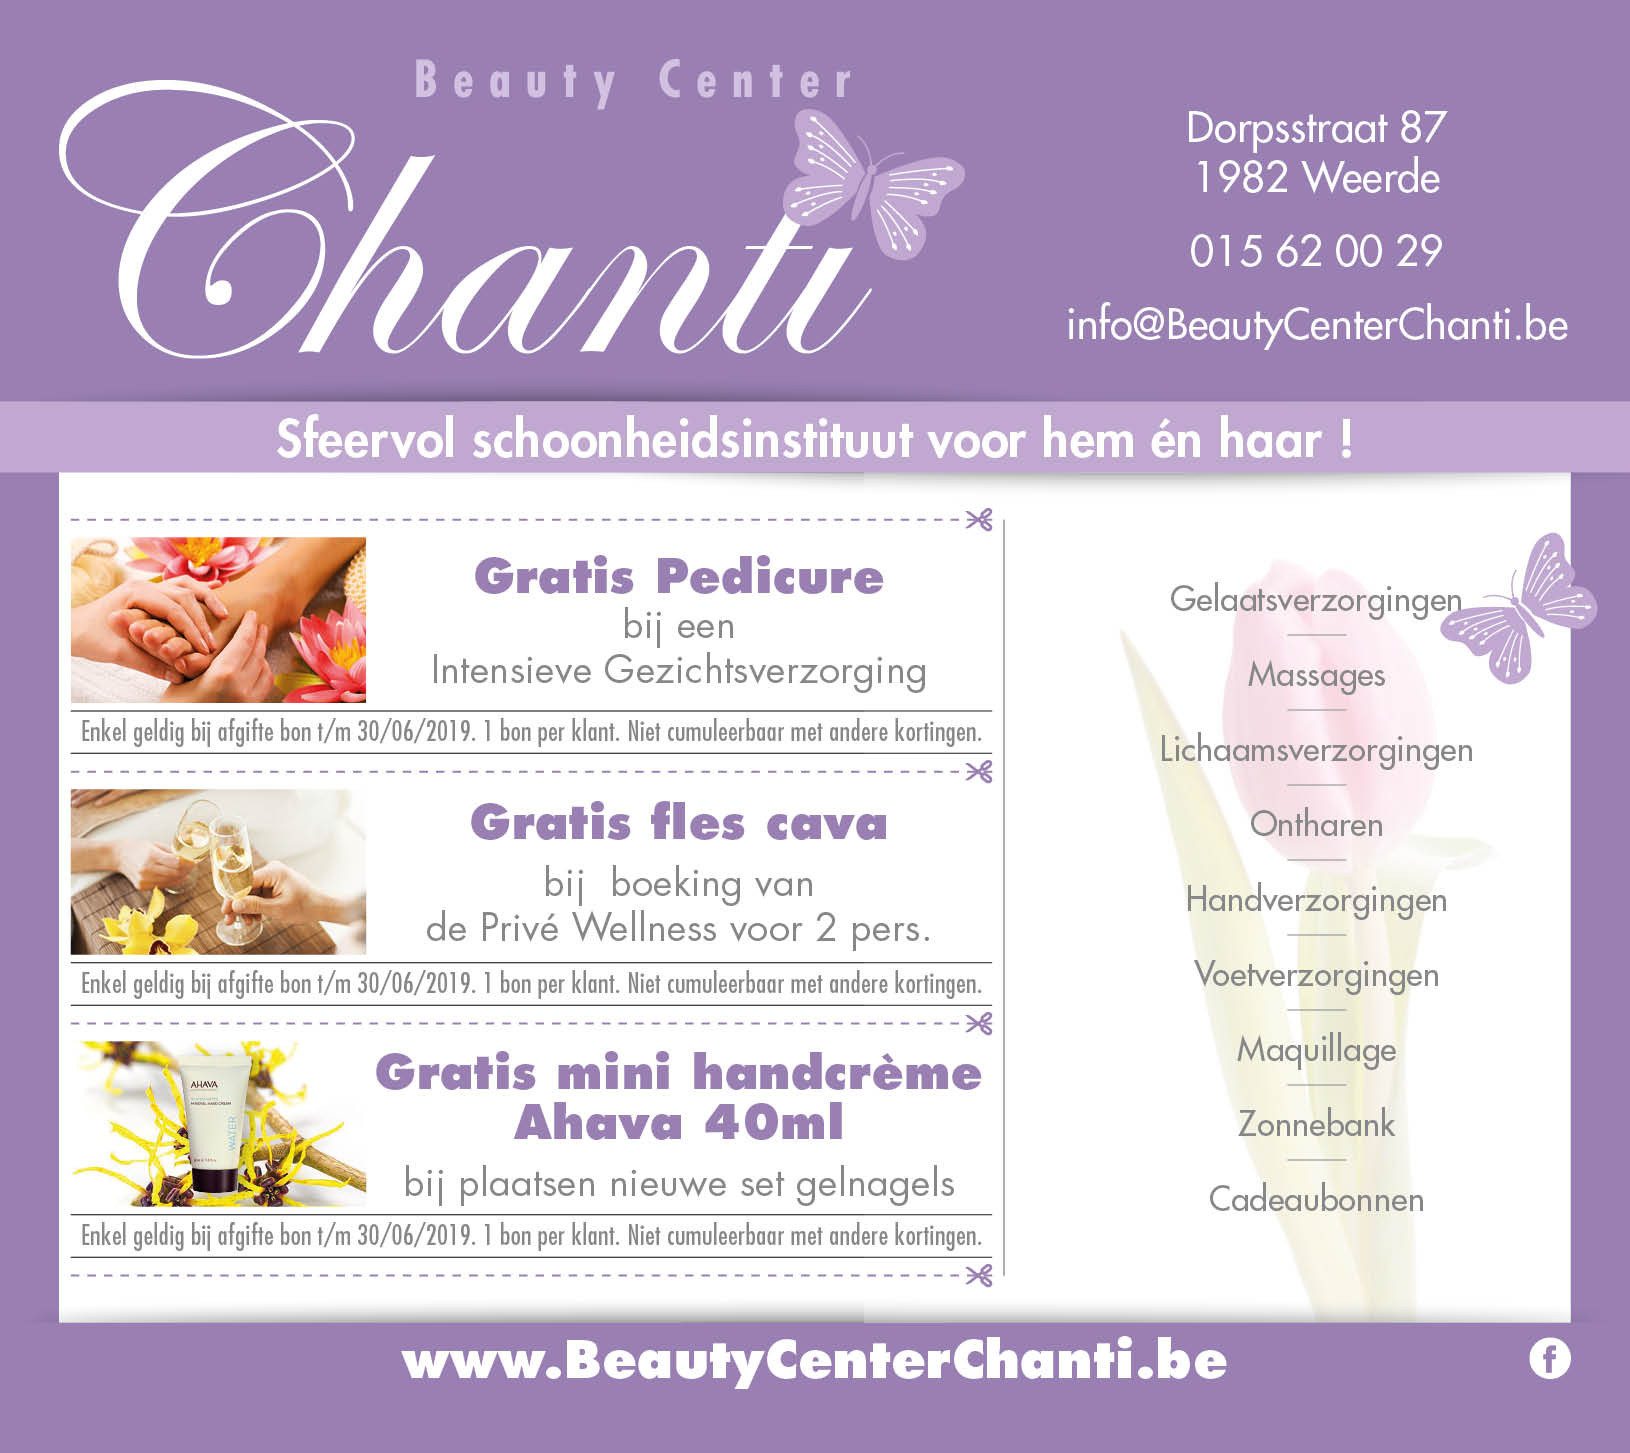 chanti_beautycenter_weerde_maart_2019.jpg